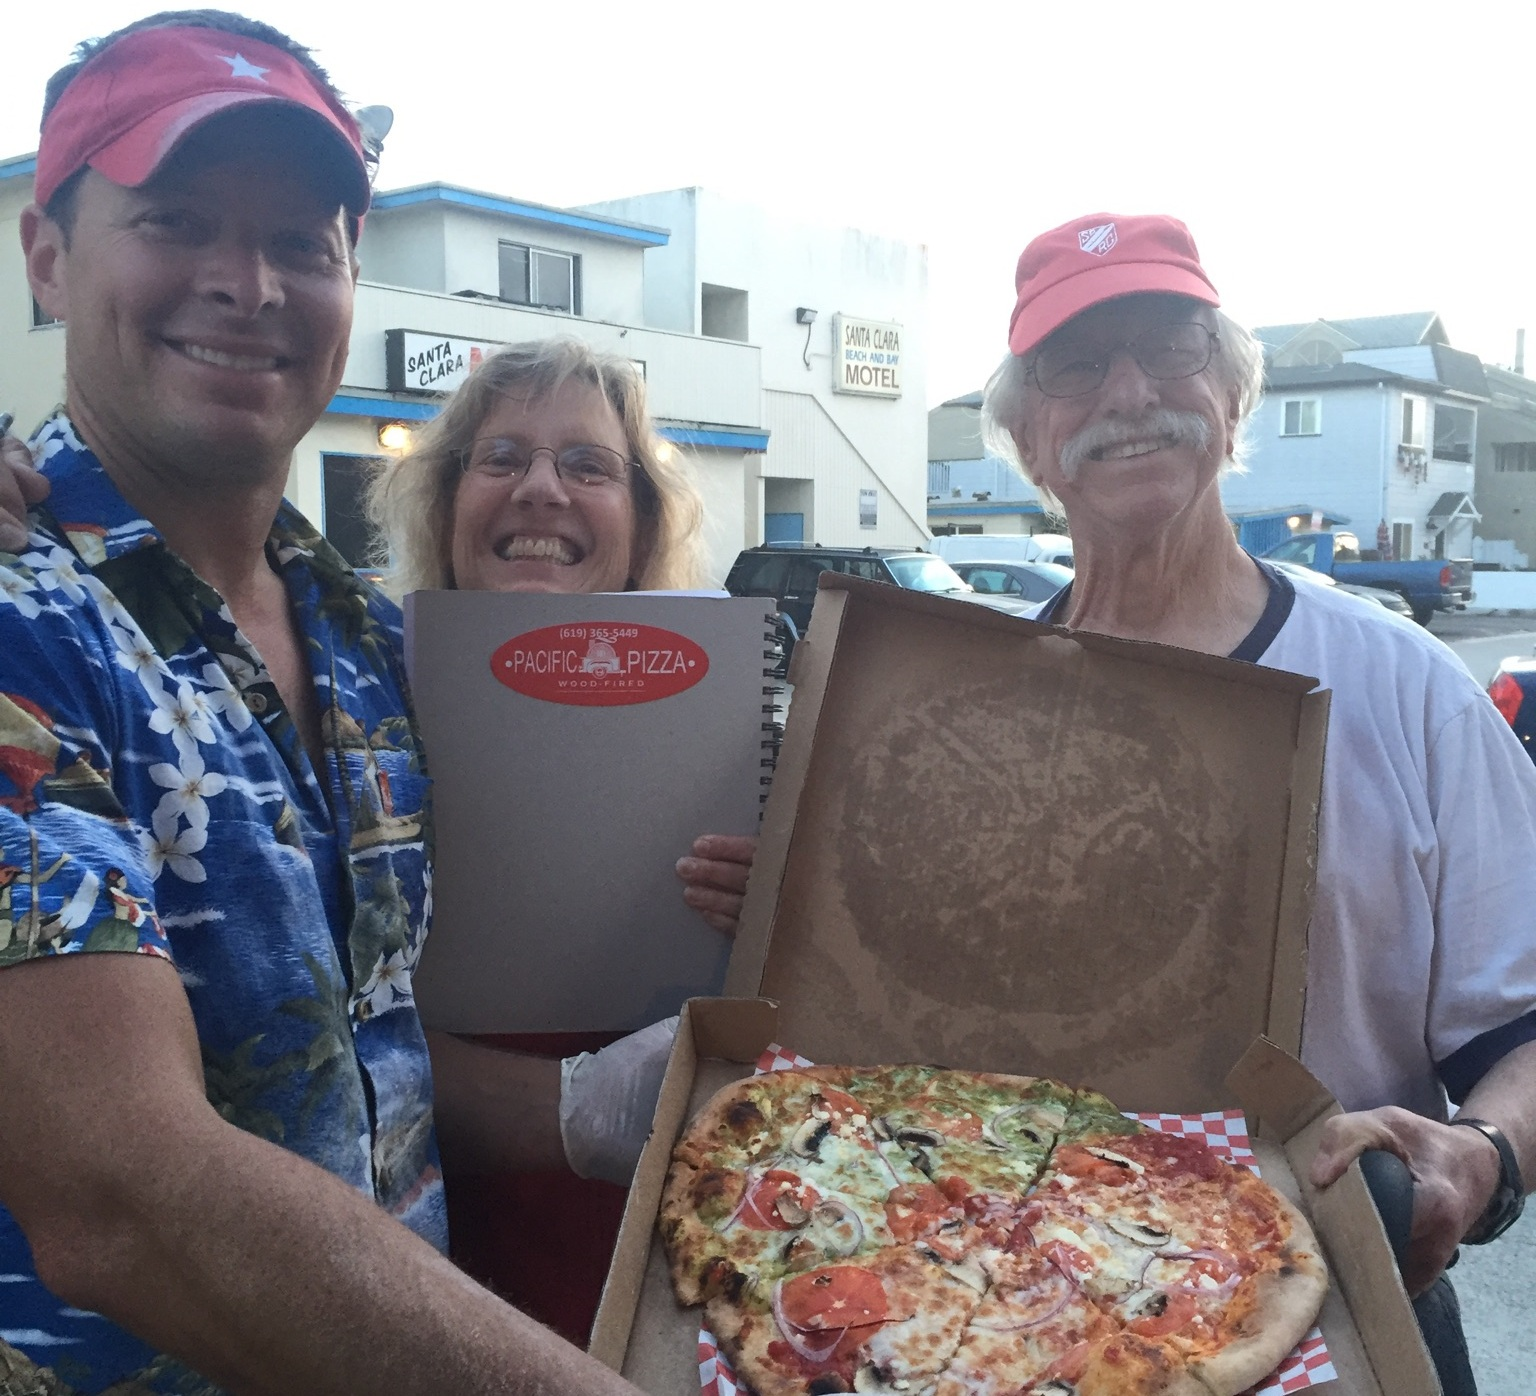 Dodd and his wife Sonja enjoying Pacific Pizza at the Surfrider fundraiser in Mission Beach